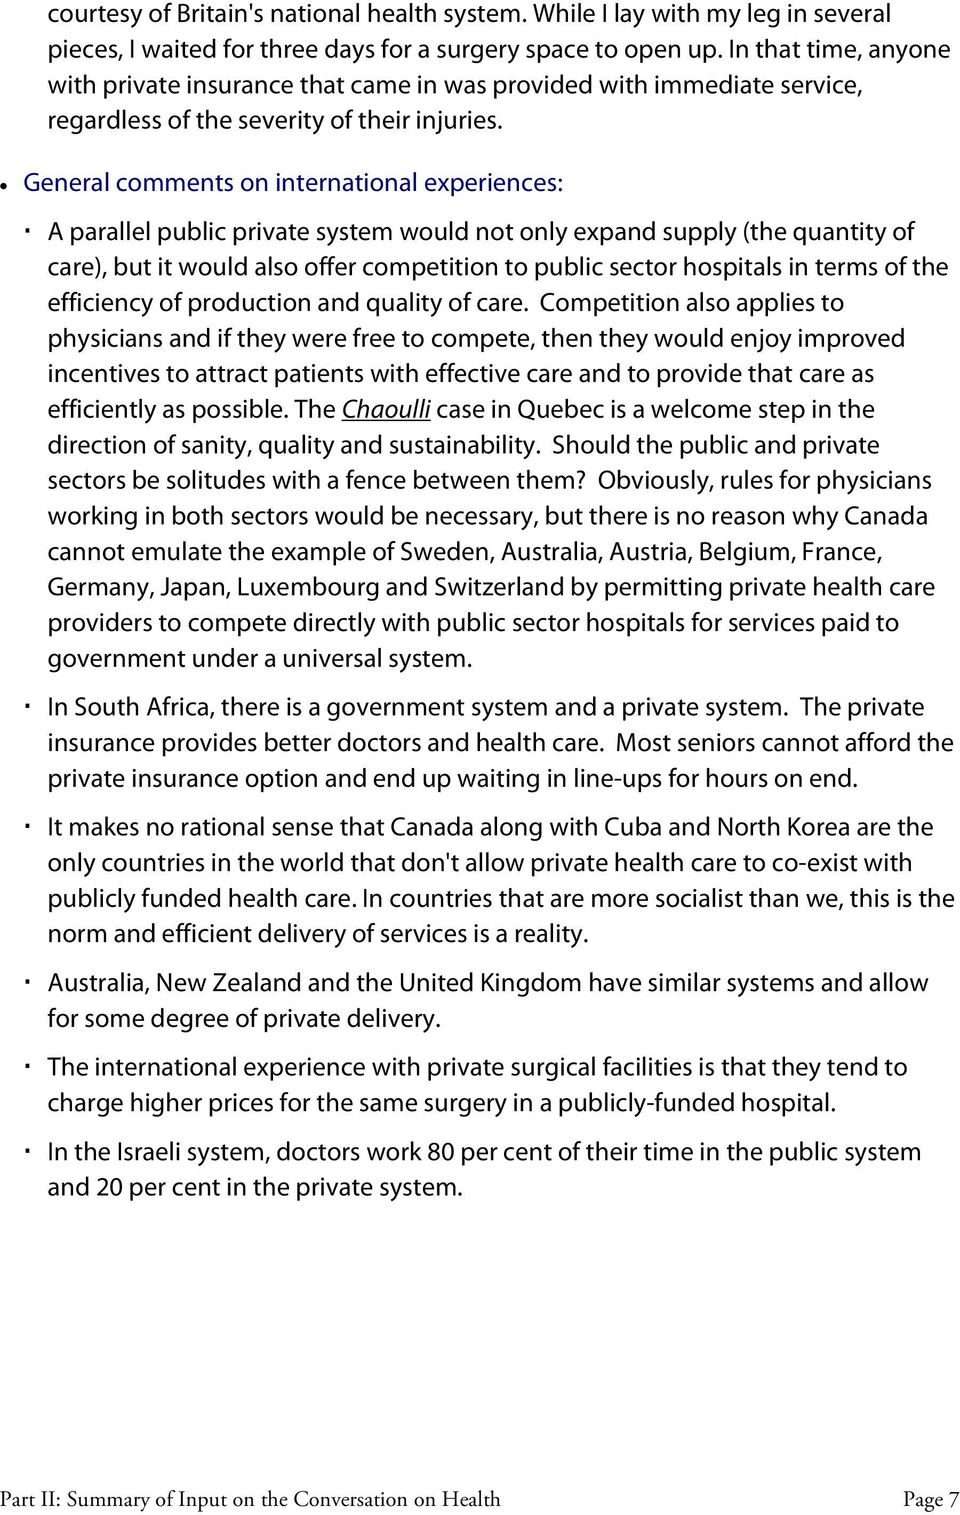 General comments on international experiences: A parallel public private system would not only expand supply (the quantity of care), but it would also offer competition to public sector hospitals in